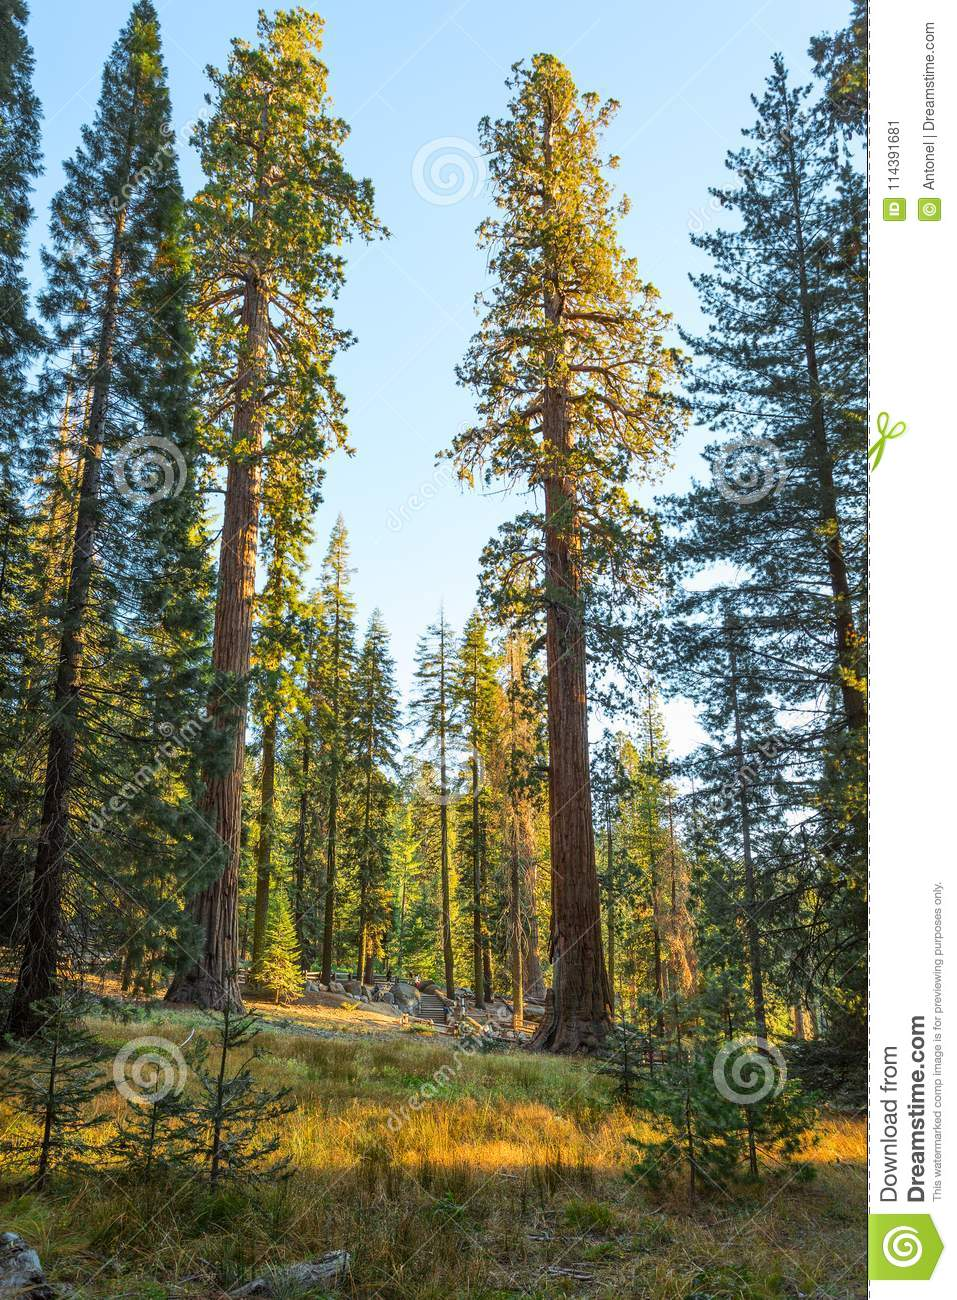 Giant Forest in the rays of the setting sun, Sequoia National Park, Tulare County, California, United States